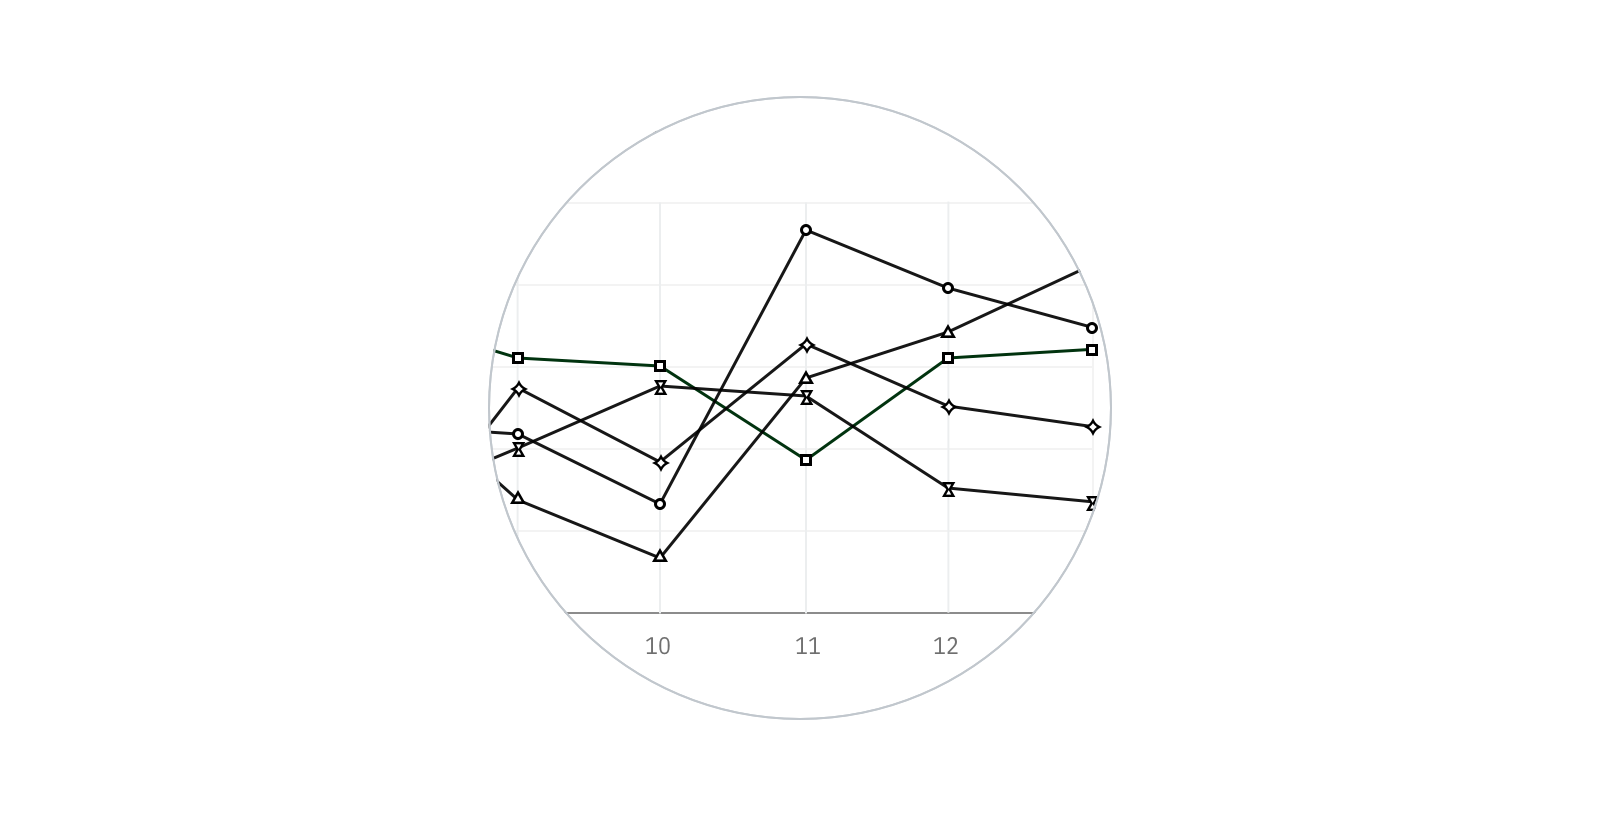 Close up on a black and white line chart using shapes for points of different categories